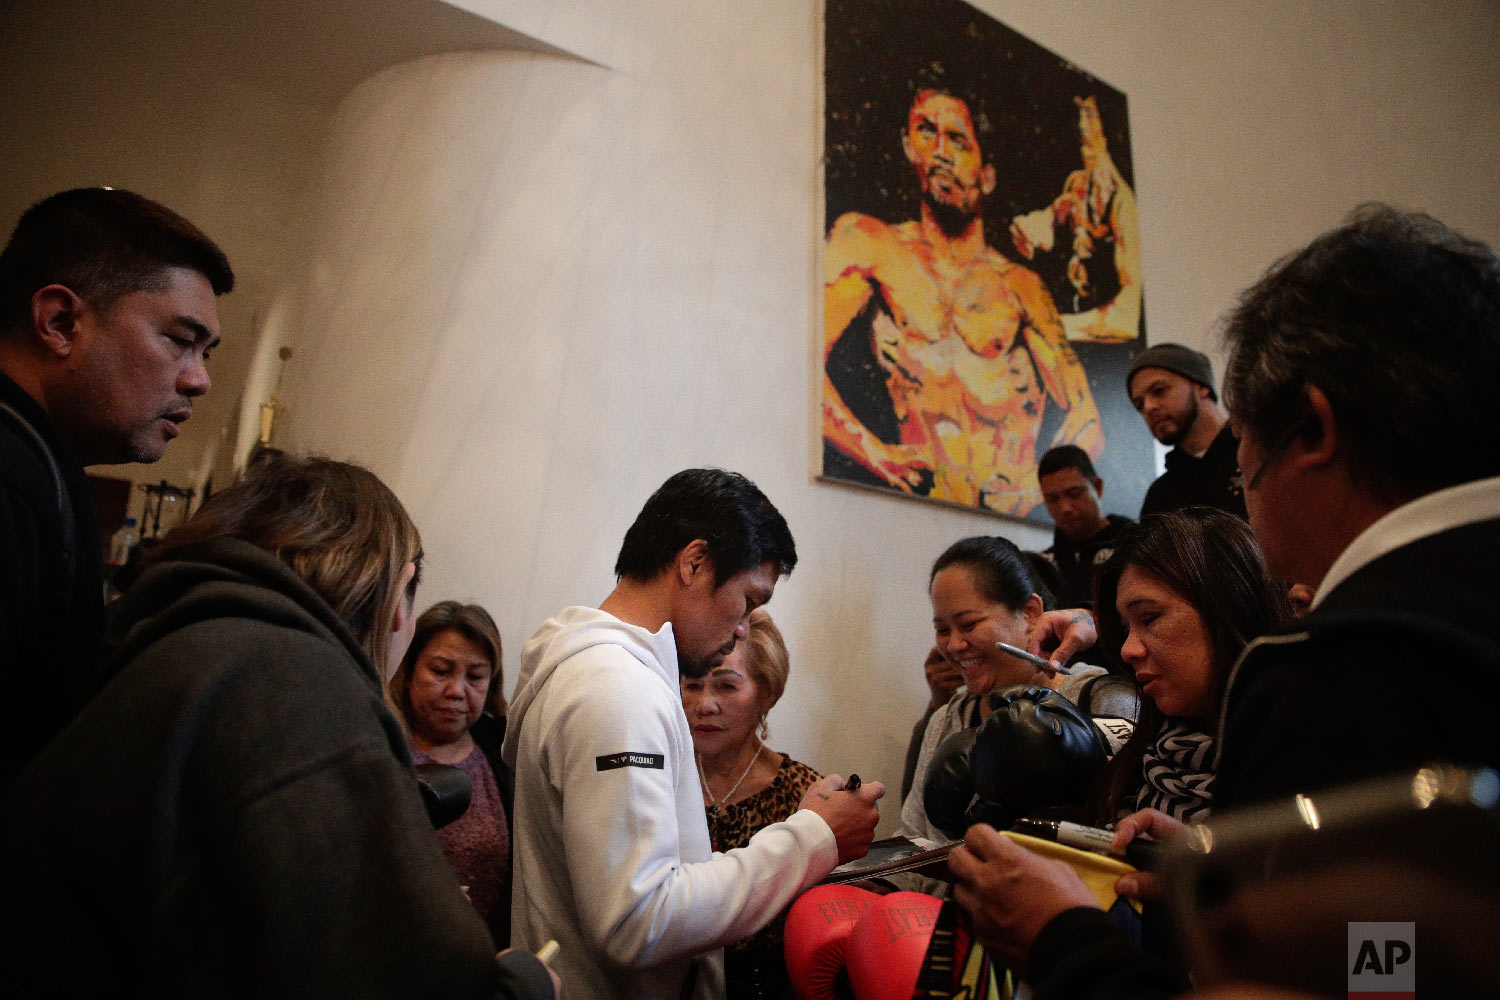 Boxer Manny Pacquiao is surrounded by guests at his home Jan. 14, 2019, in Los Angeles. (AP Photo/Jae C. Hong)